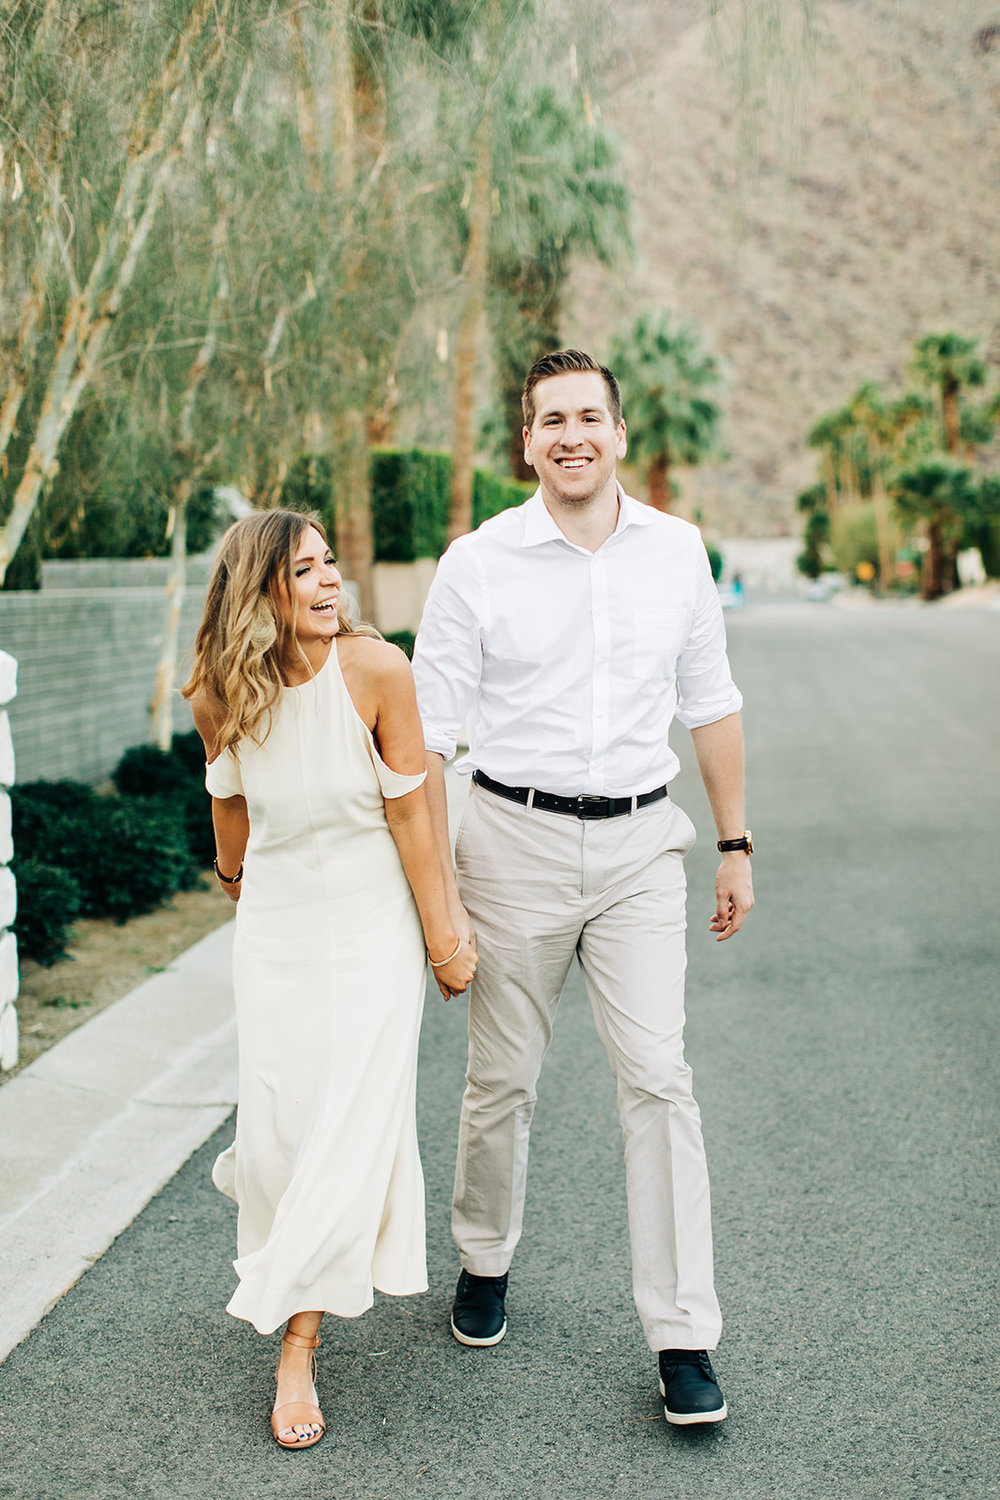 Paulina-Drew_Palm-Springs-Engagement-Photos_Clarisse-Rae_Southern-California-Wedding-Photographer-34